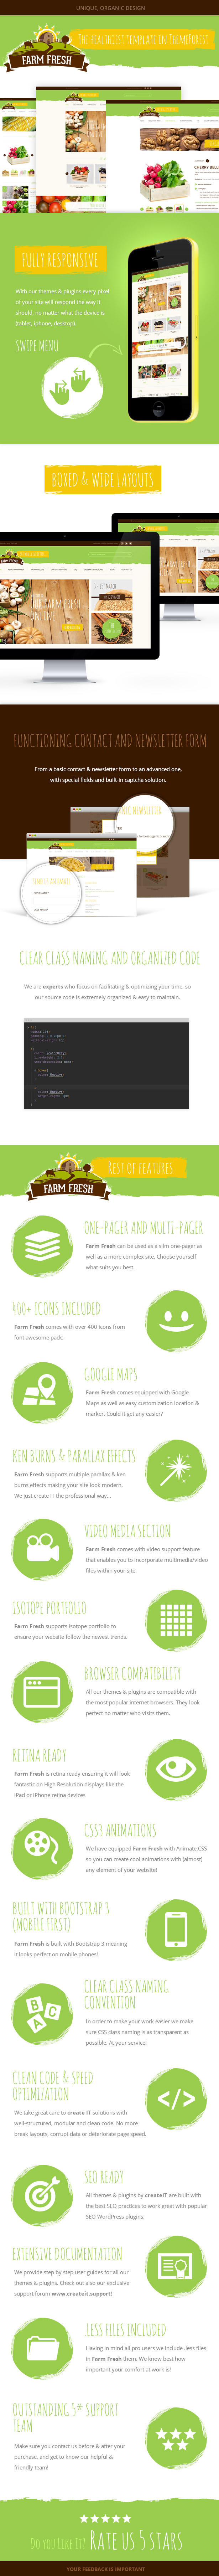 Farm Fresh Features List